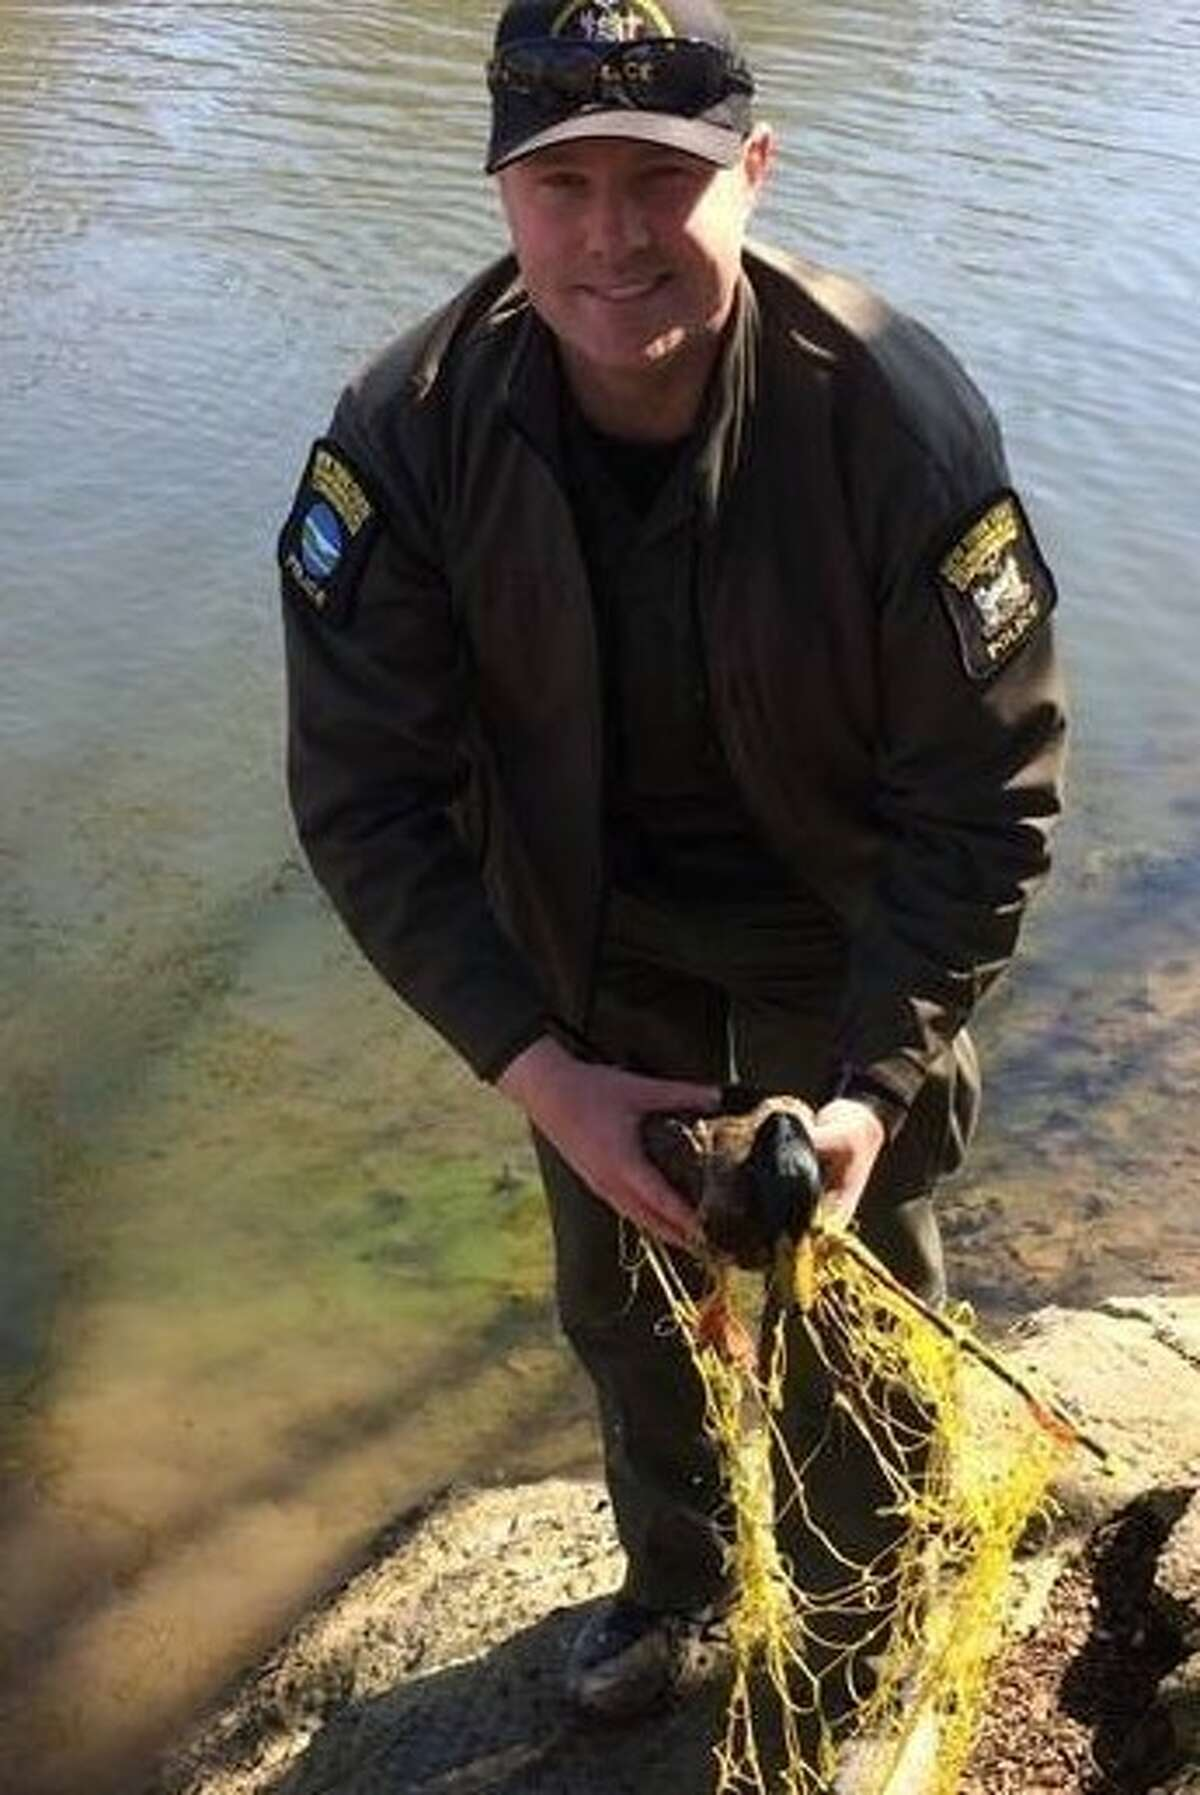 Mallard duck with arrow stuck in it rescued from Albany's Washington Park Lake.